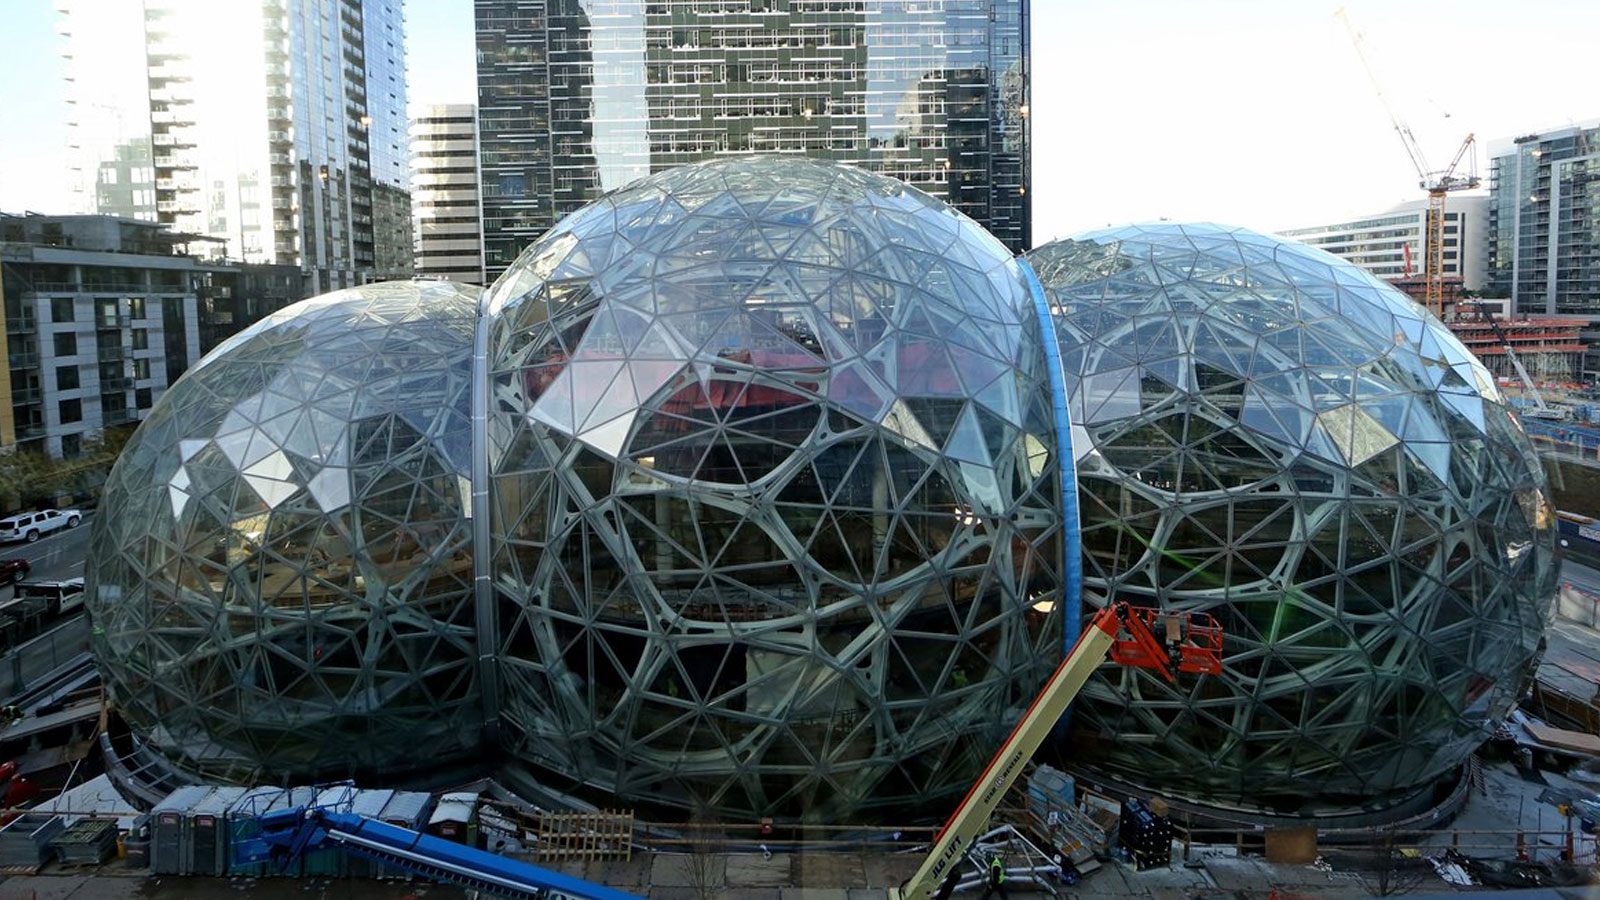 Amazon Introduces Giant Treehouse Spheres To Relax